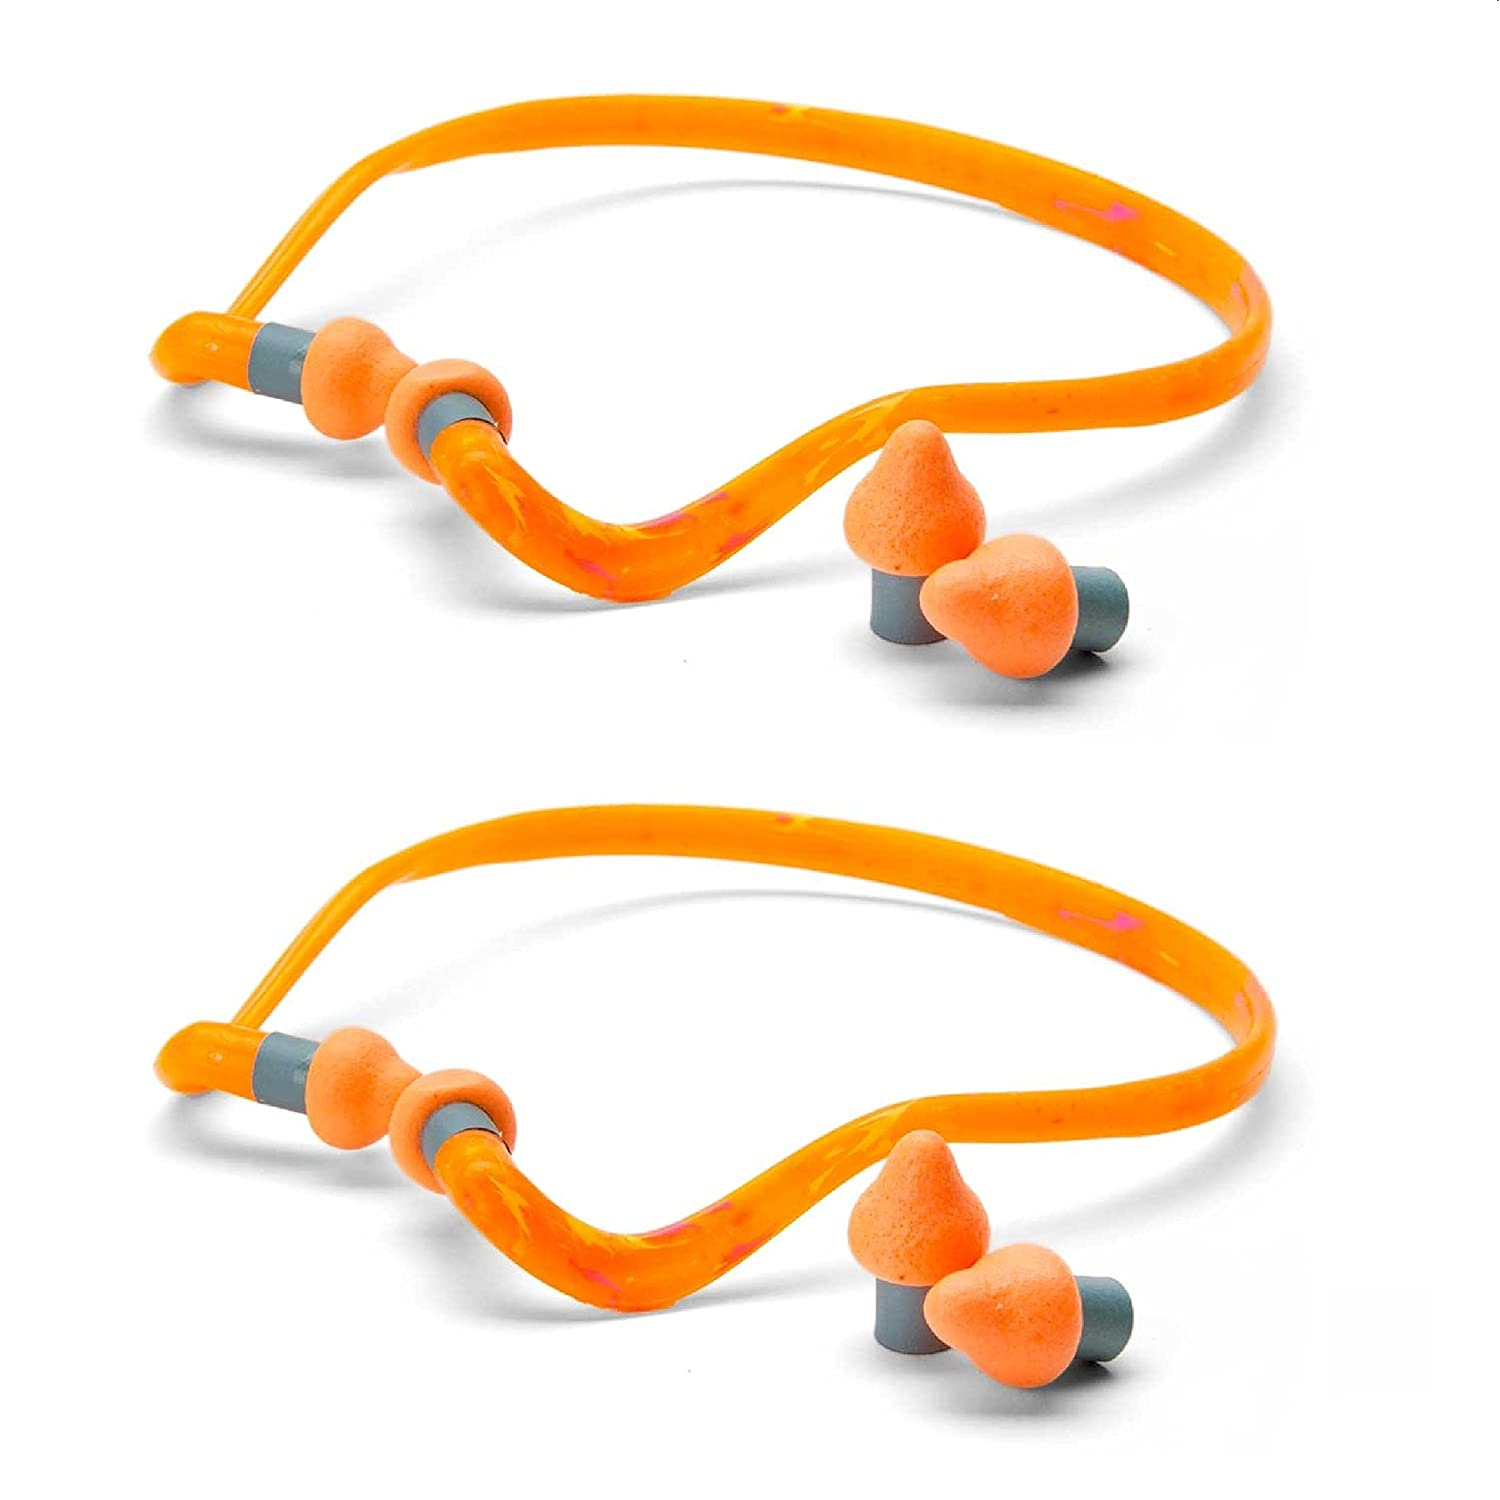 QB2HYG® Hearing Bands - quiet bands banded supra-aural hearing pro [Set of 2]